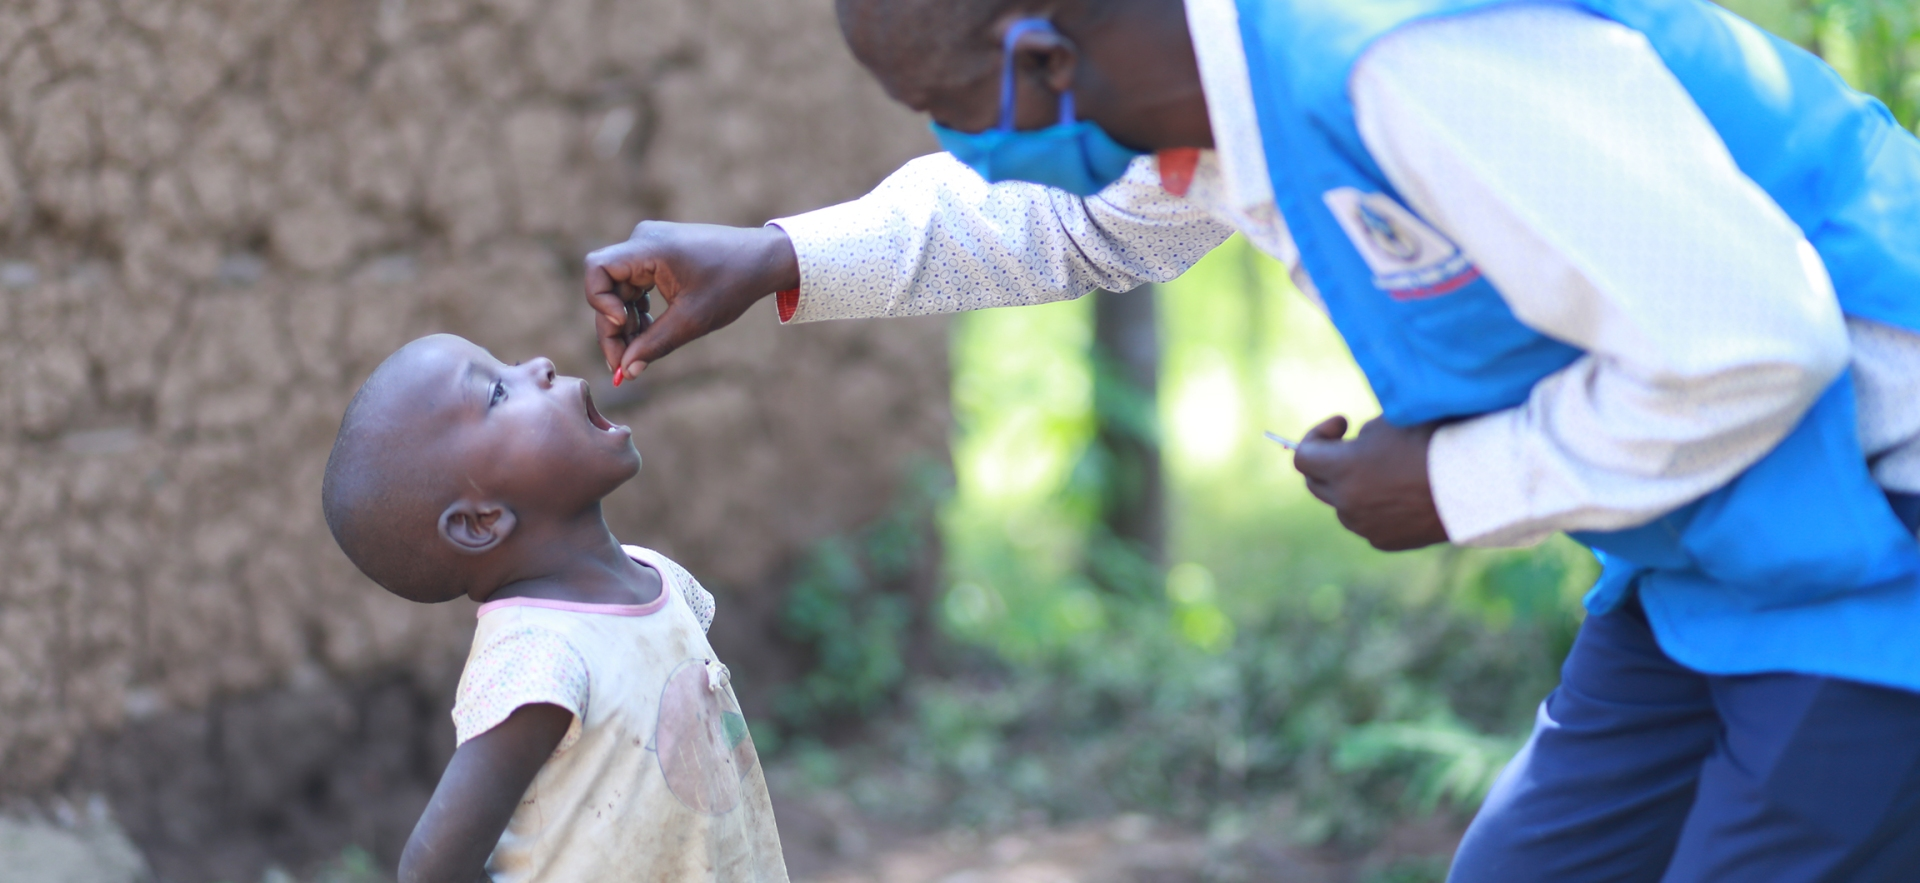 A health worker squeezes a dose of Vitamin A into a small child's mouth